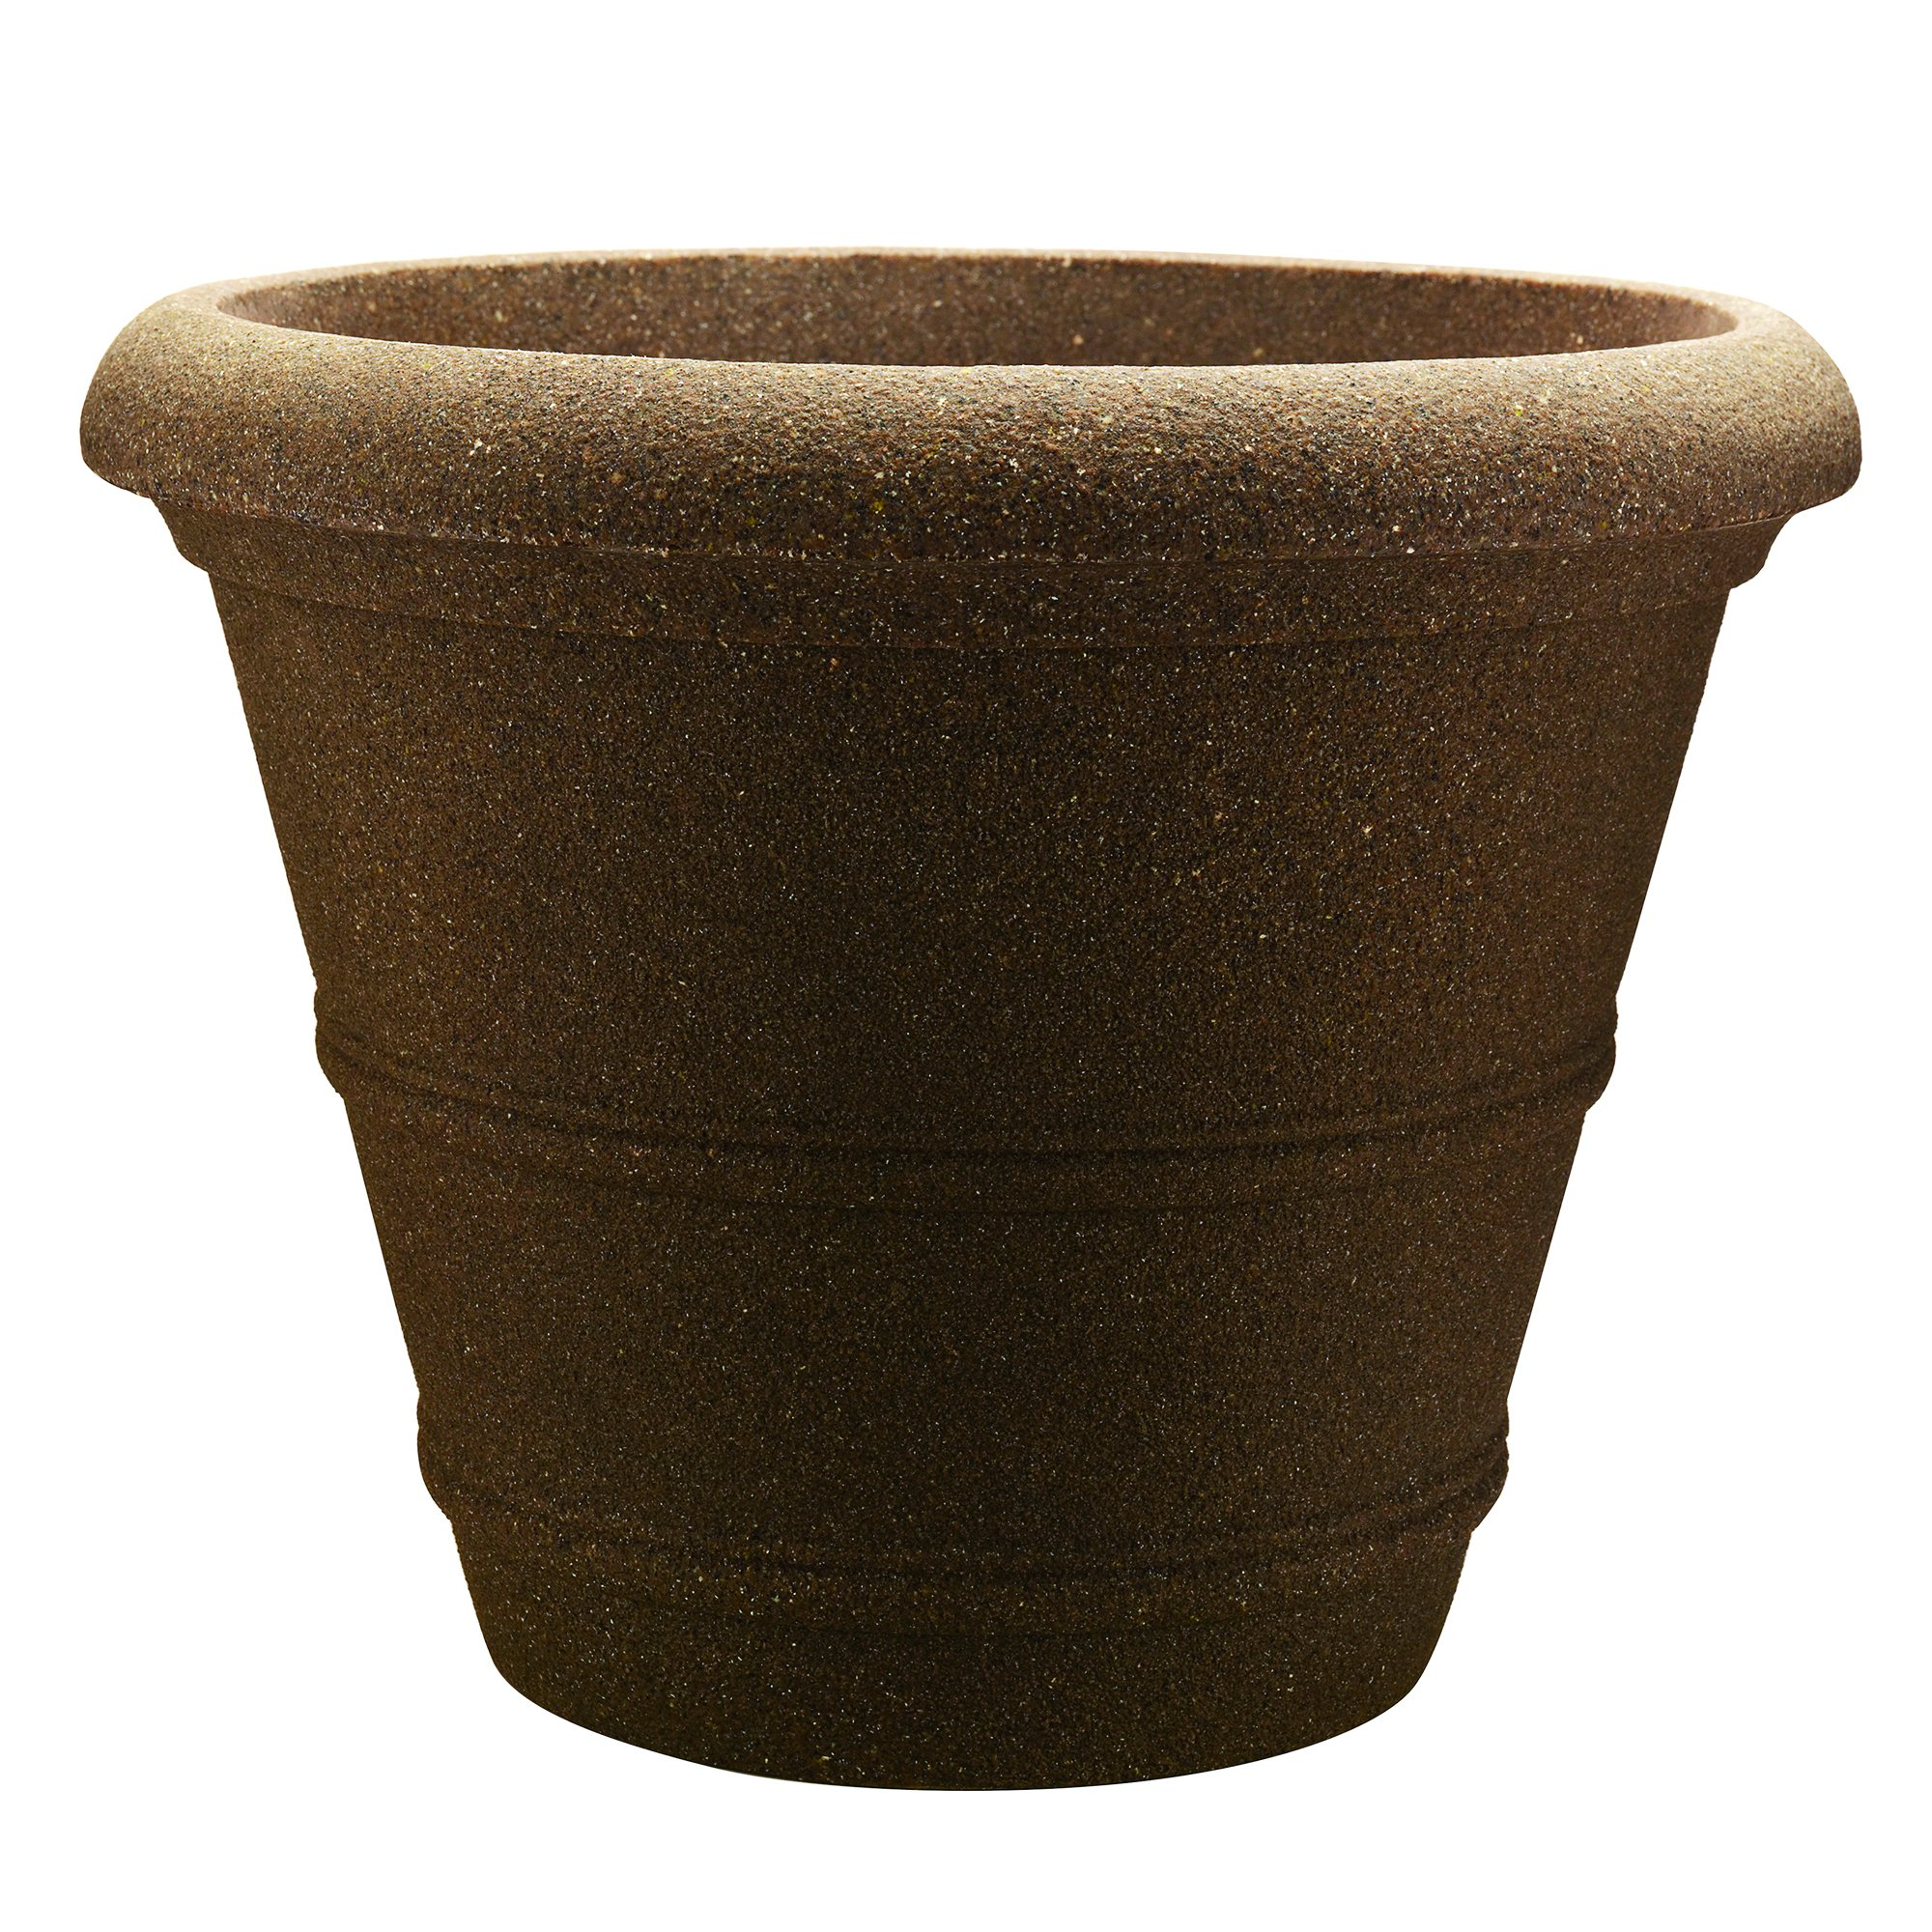 Southern Patio 20'' Veranda Poly-Resin Planter, Granite Brown